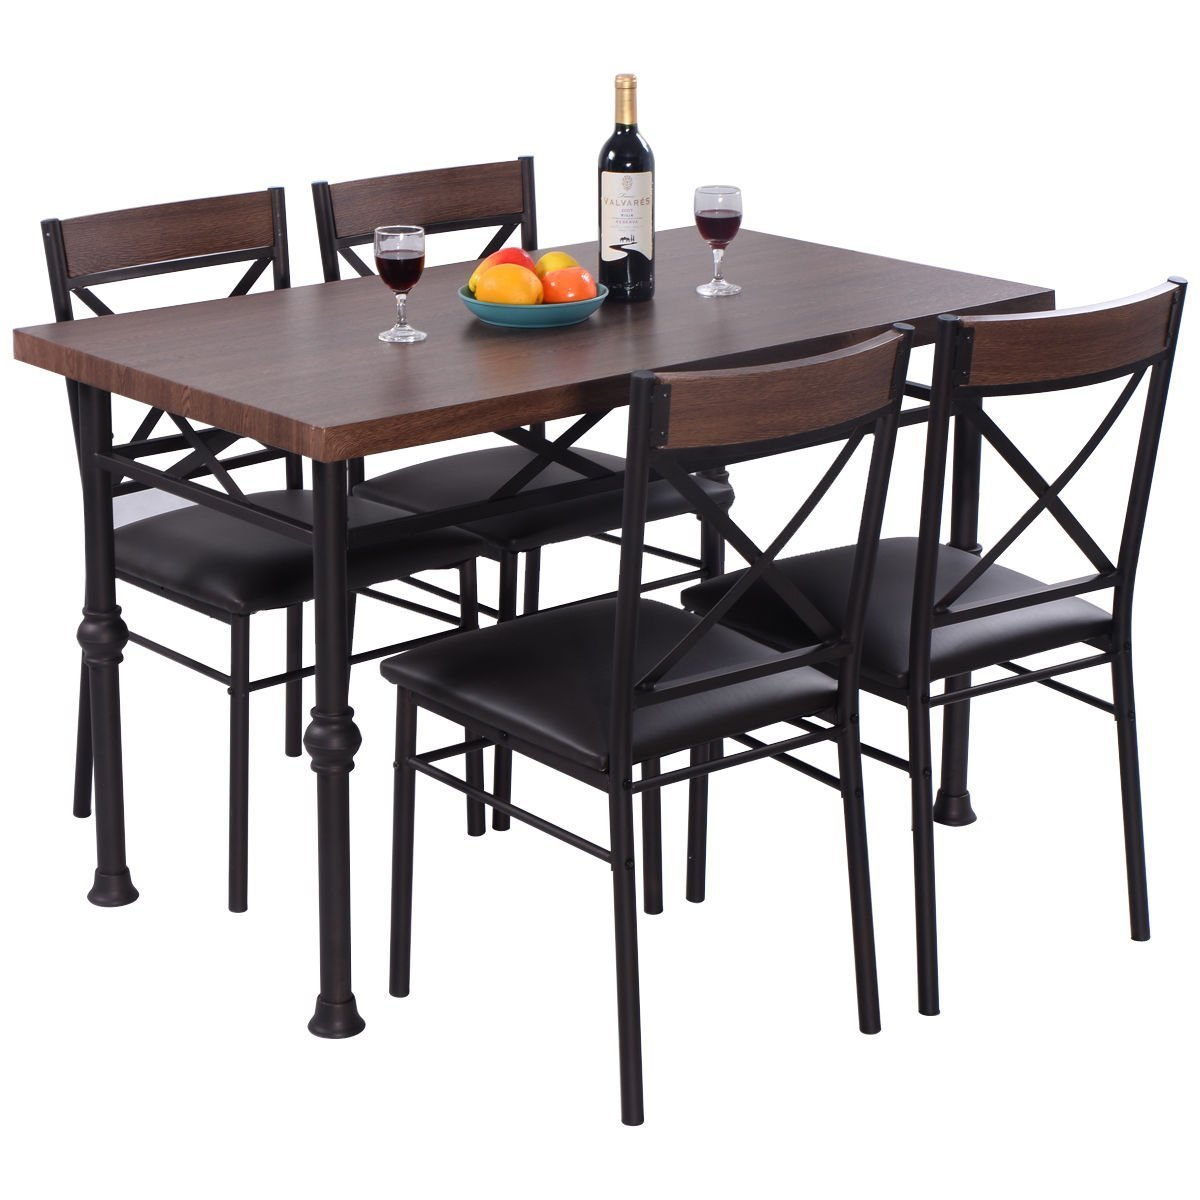 Giantex 5 Piece Modern Dining Set Table and 4 Chairs Wood ...